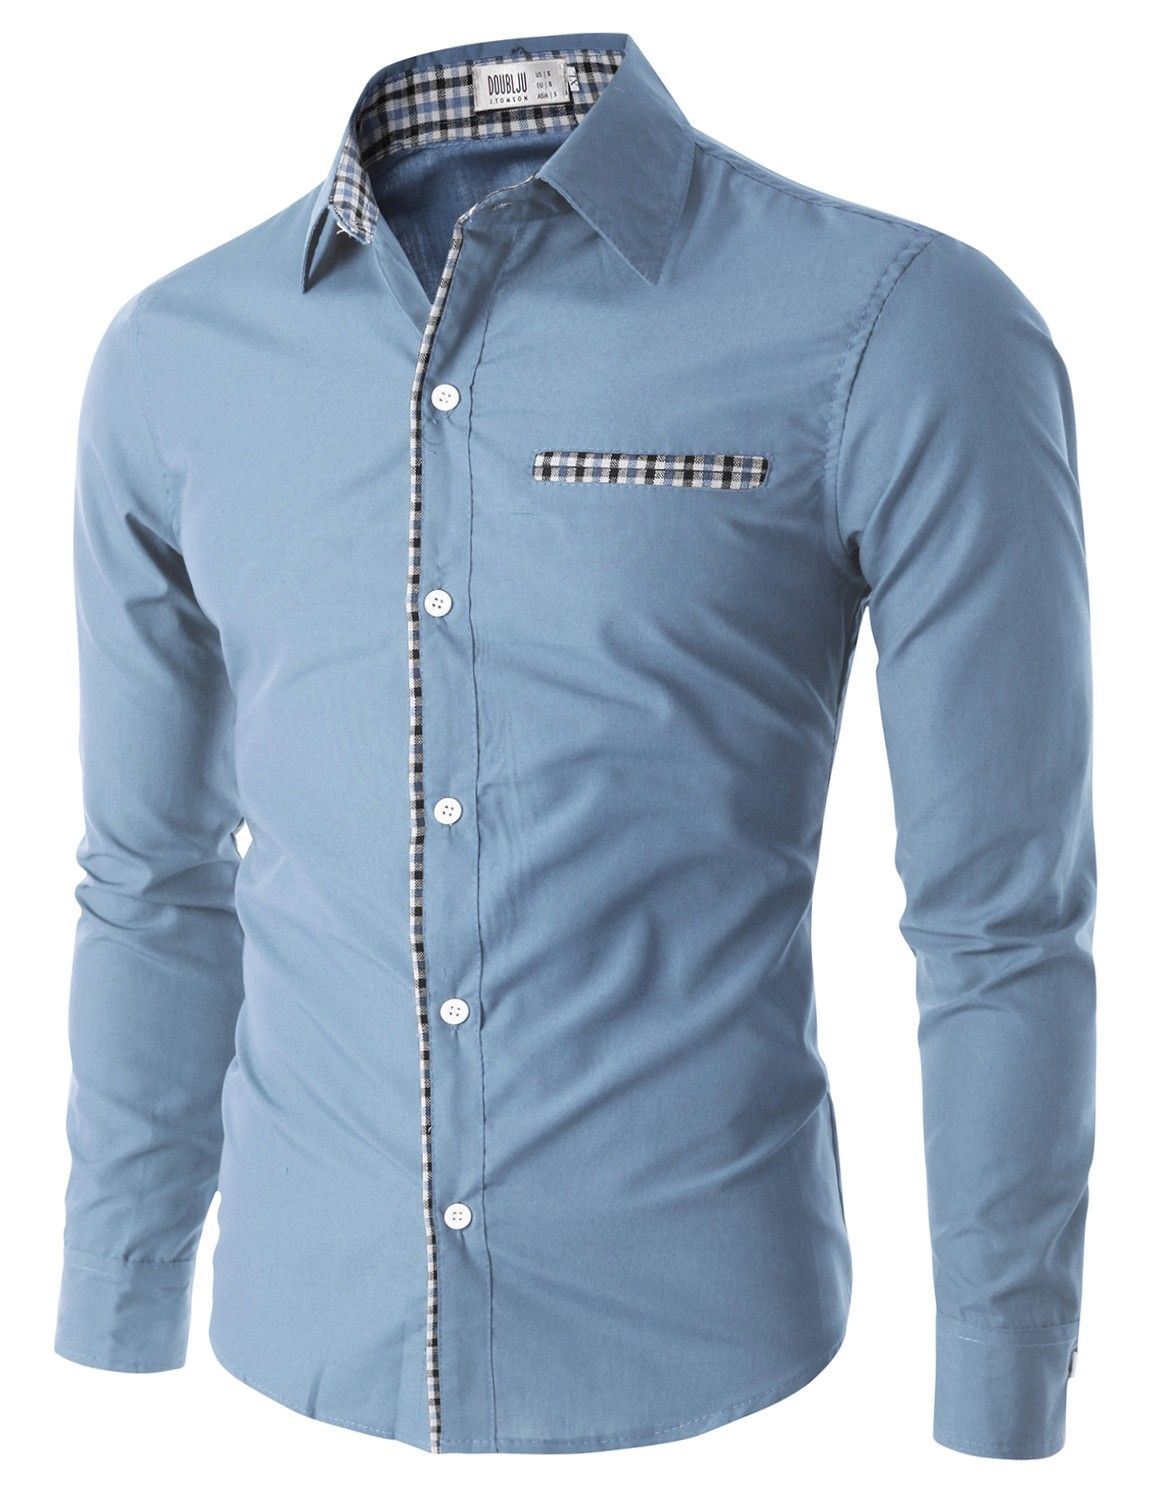 26.99 Doublju Men s Casual Button Down Shirt with Chest Pocket (CMTSTL06). Camisas  HombreCamisas ... 3f22459a845